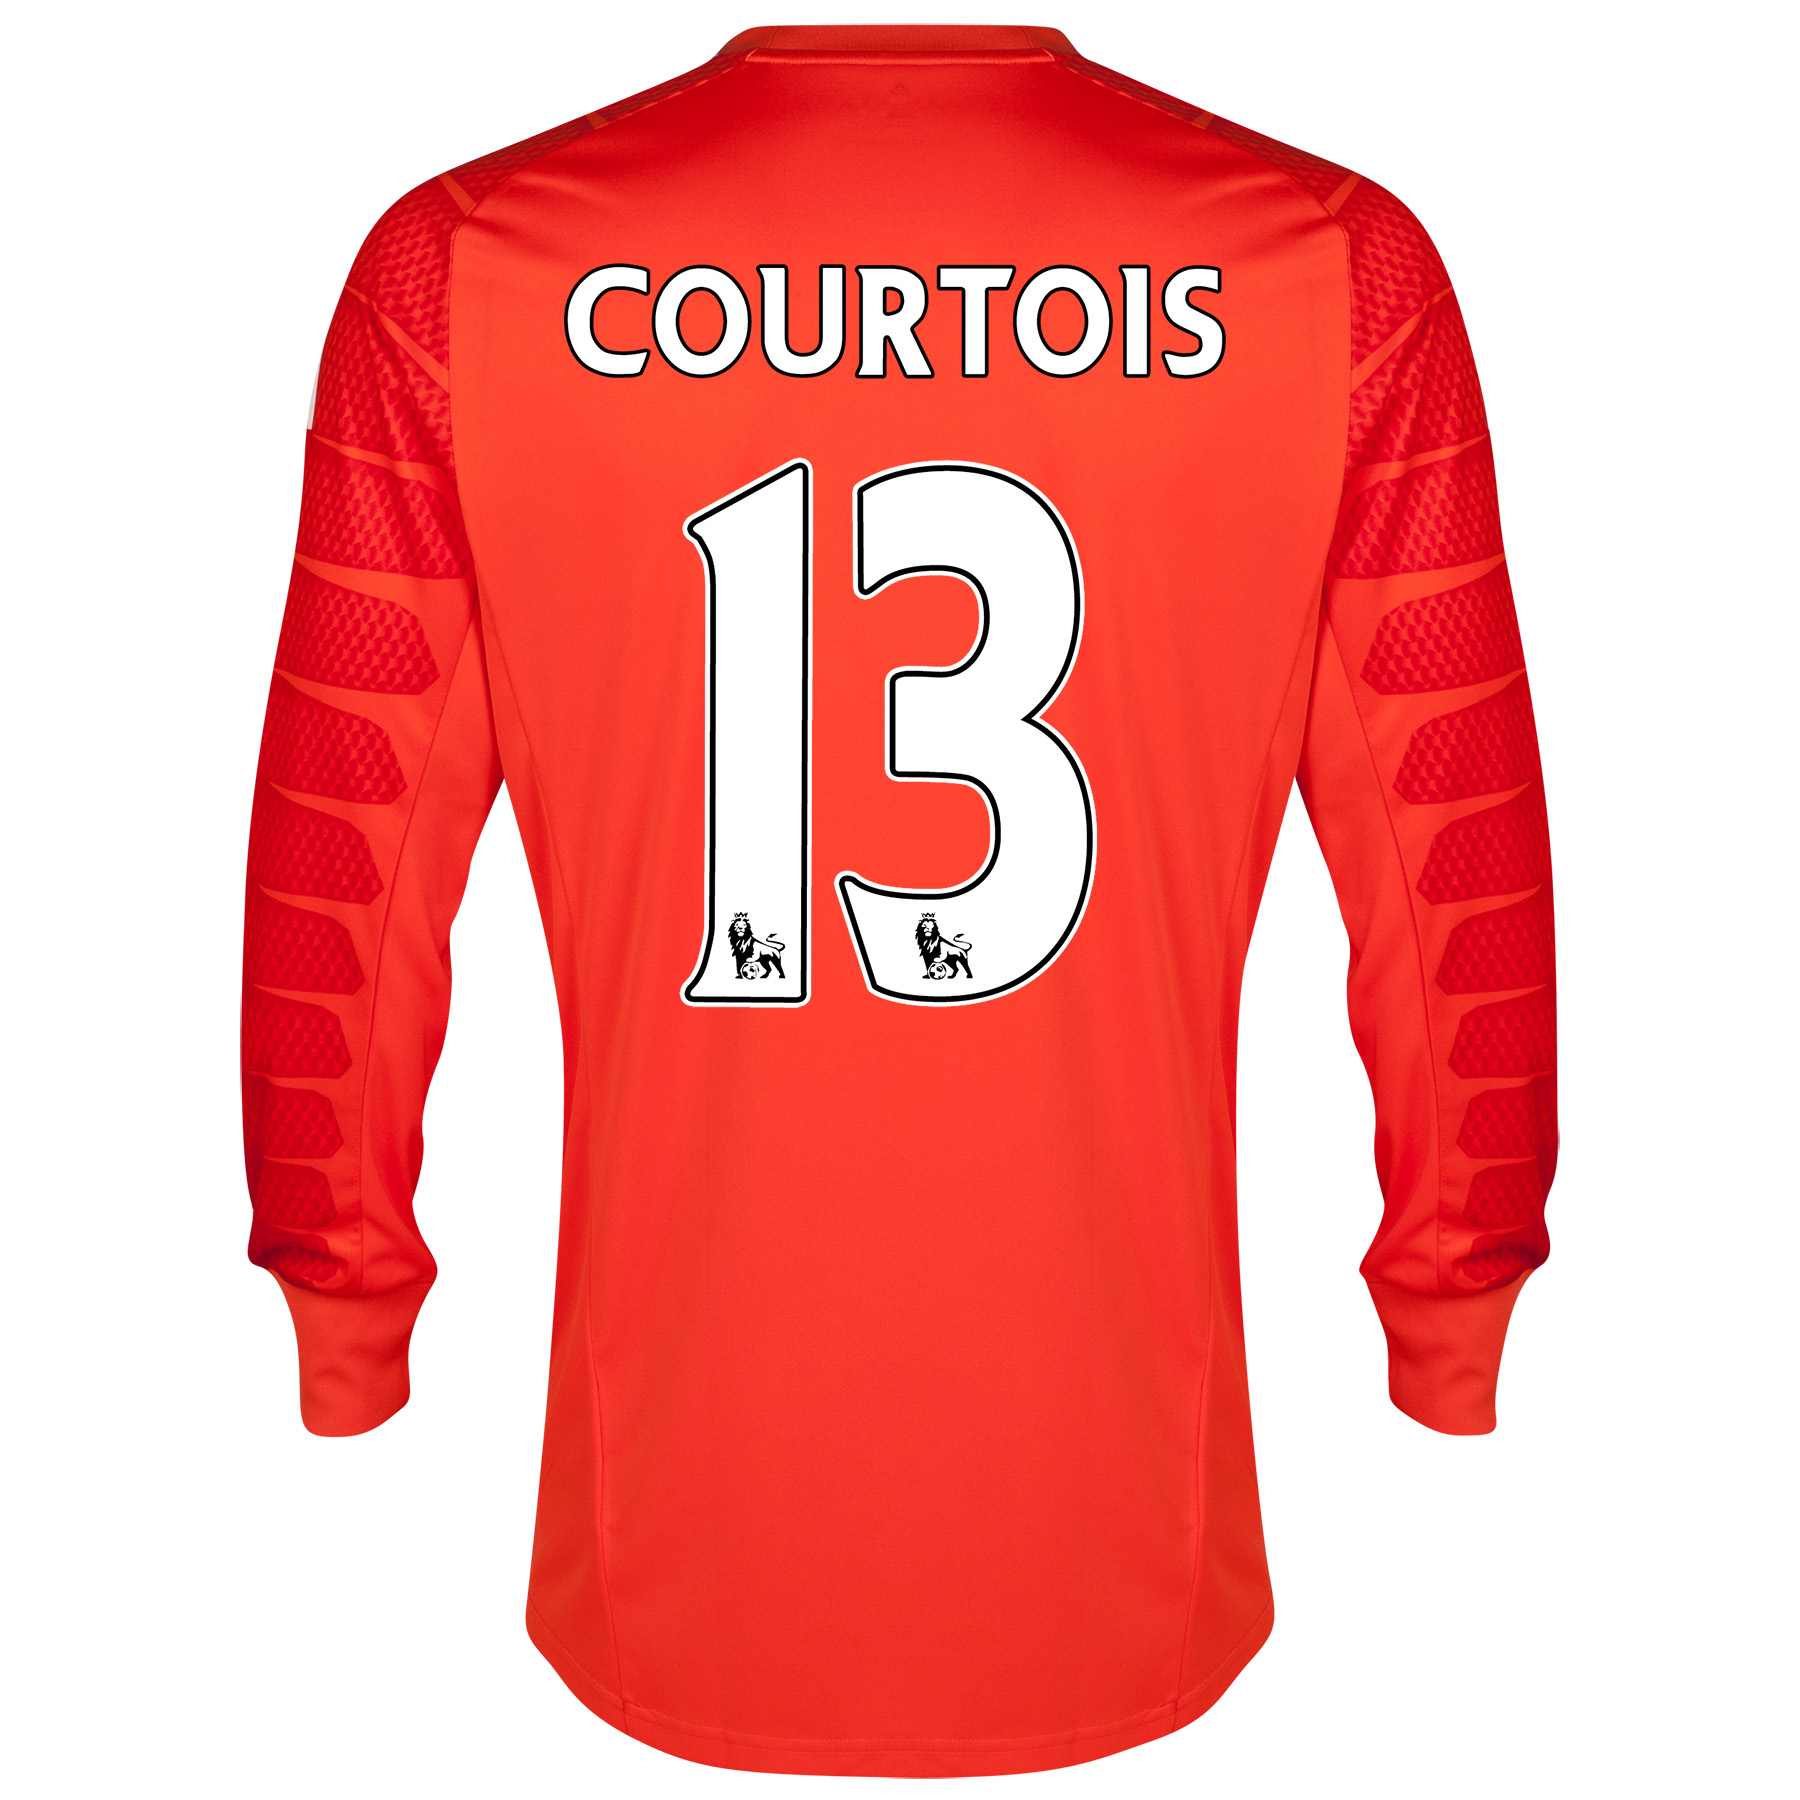 Chelsea Goalkeeper Shirt 2014/15 - Kids - Solar with Courtois 13 printing